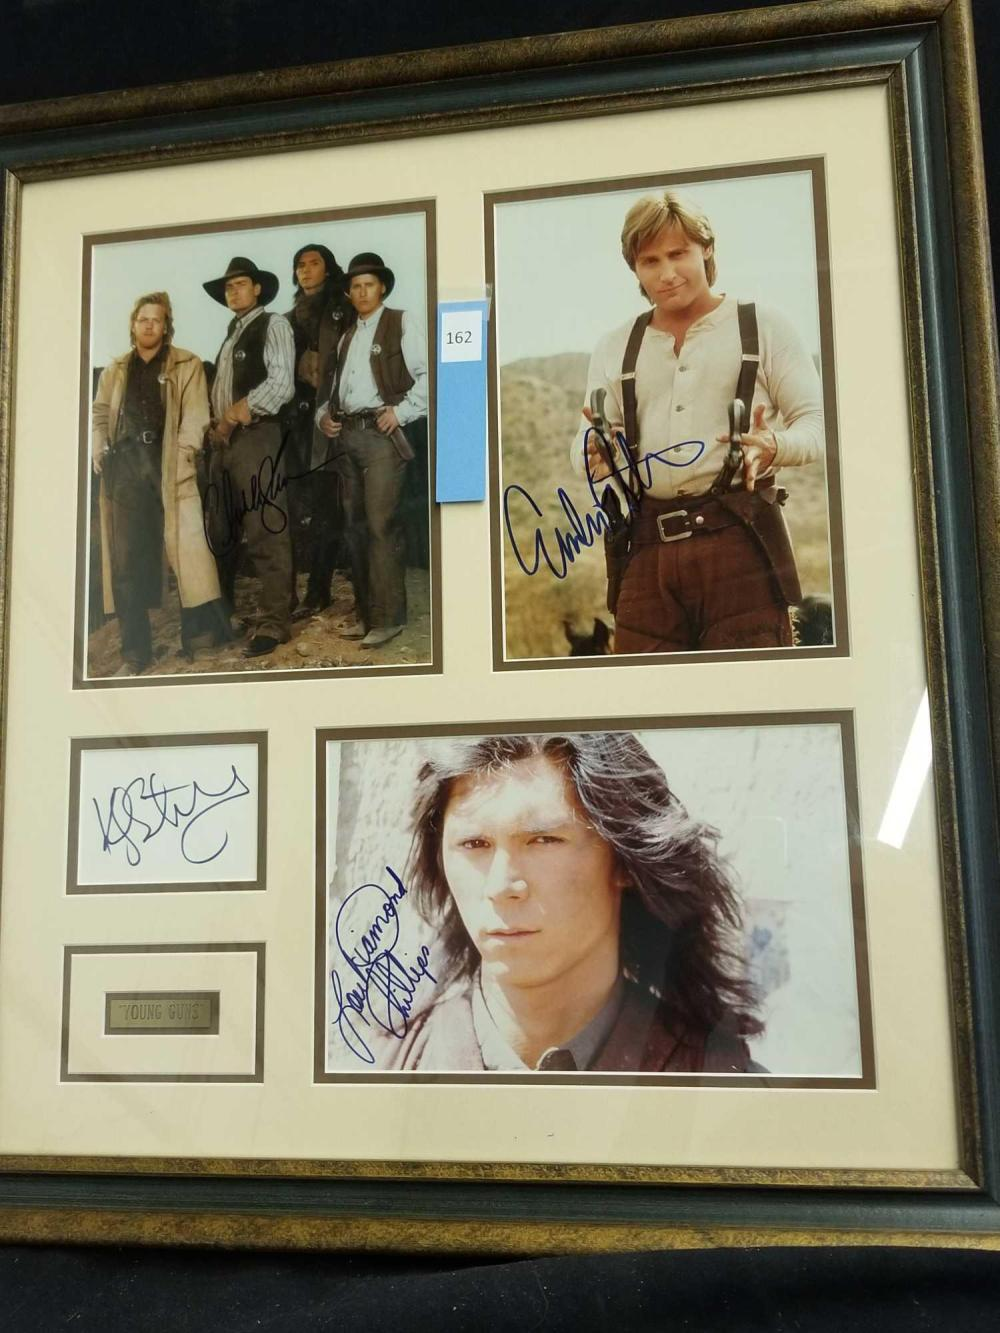 """YOUNG GUNS"" MOVIE CAST SIGNED PHOTOS W/ NAME PLAQUE"